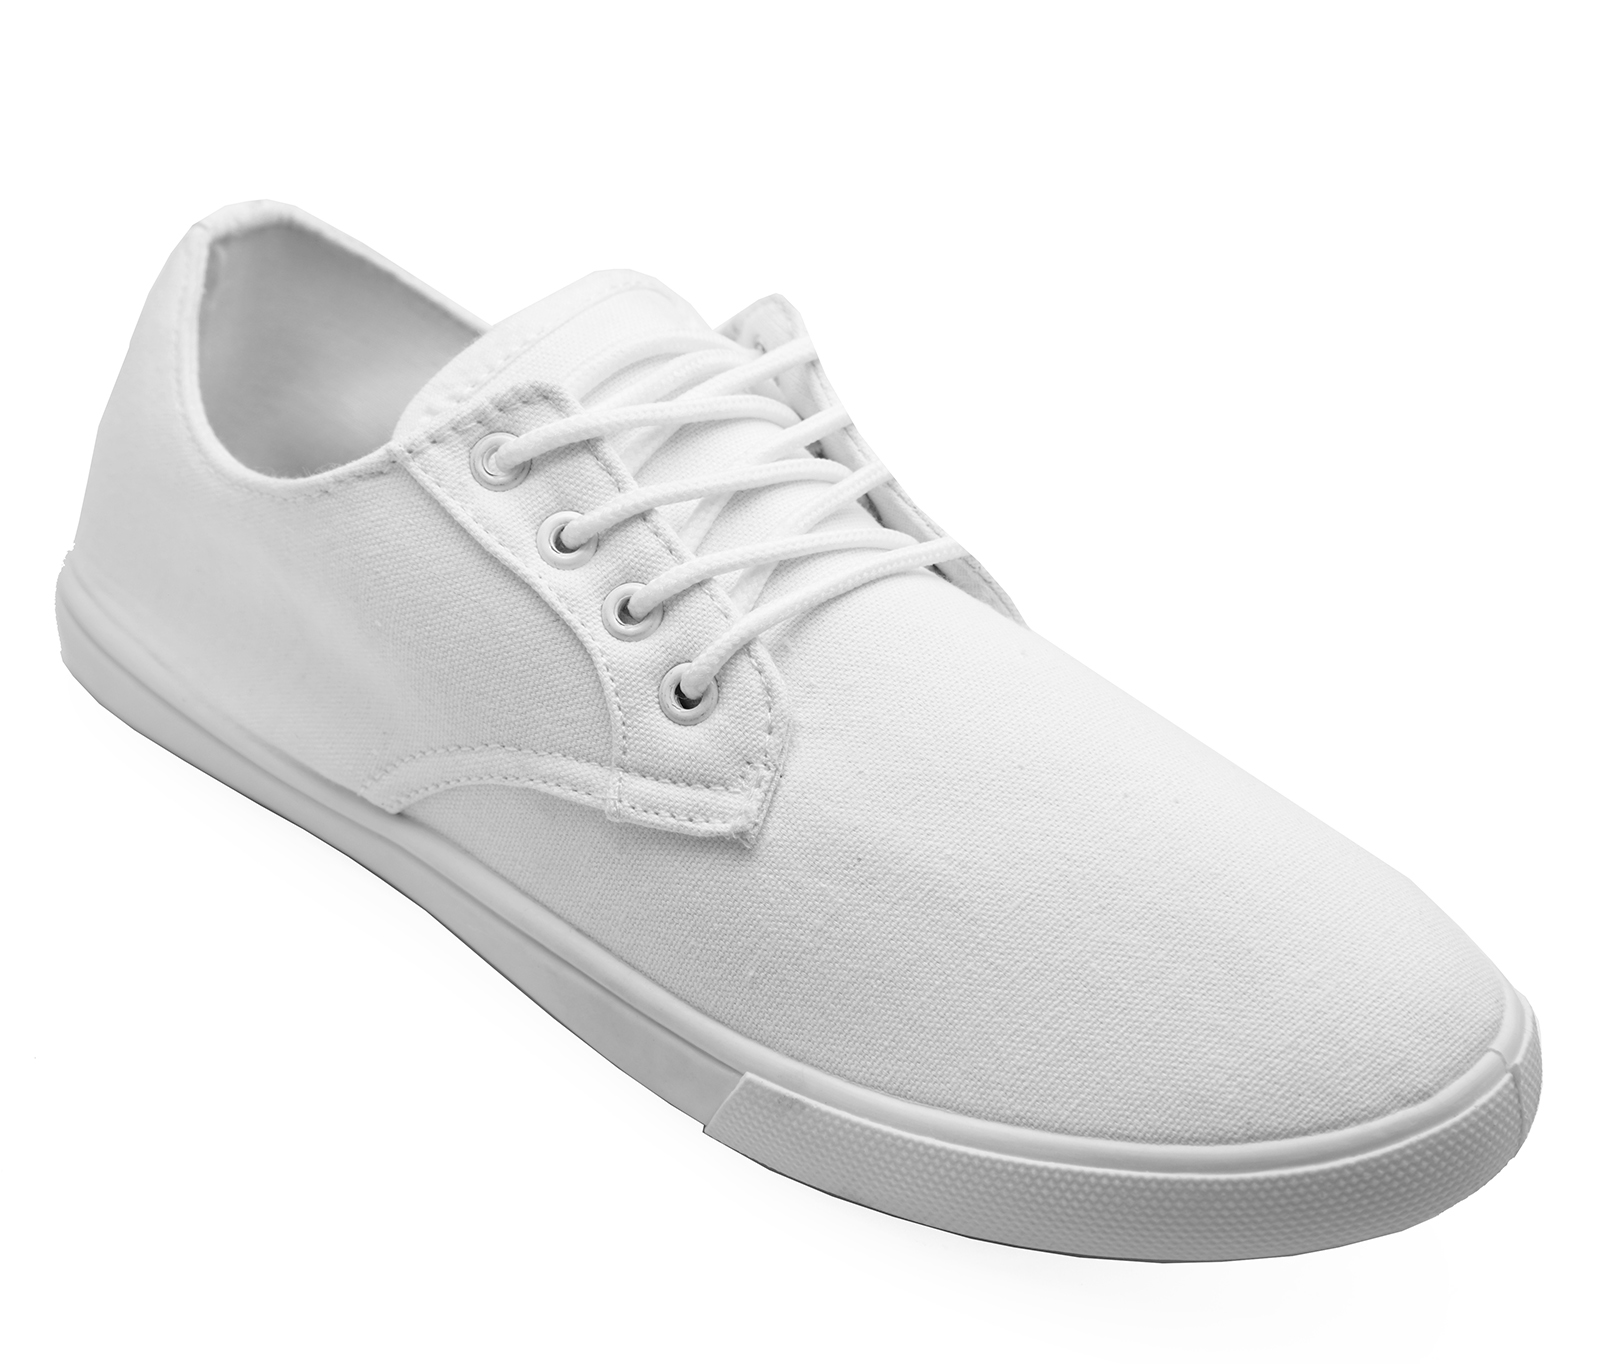 MENS-LACE-UP-WHITE-CANVAS-FLAT-TRAINER-PLIMSOLL-PUMPS-CASUAL-SHOES-SIZES-6-12 thumbnail 14